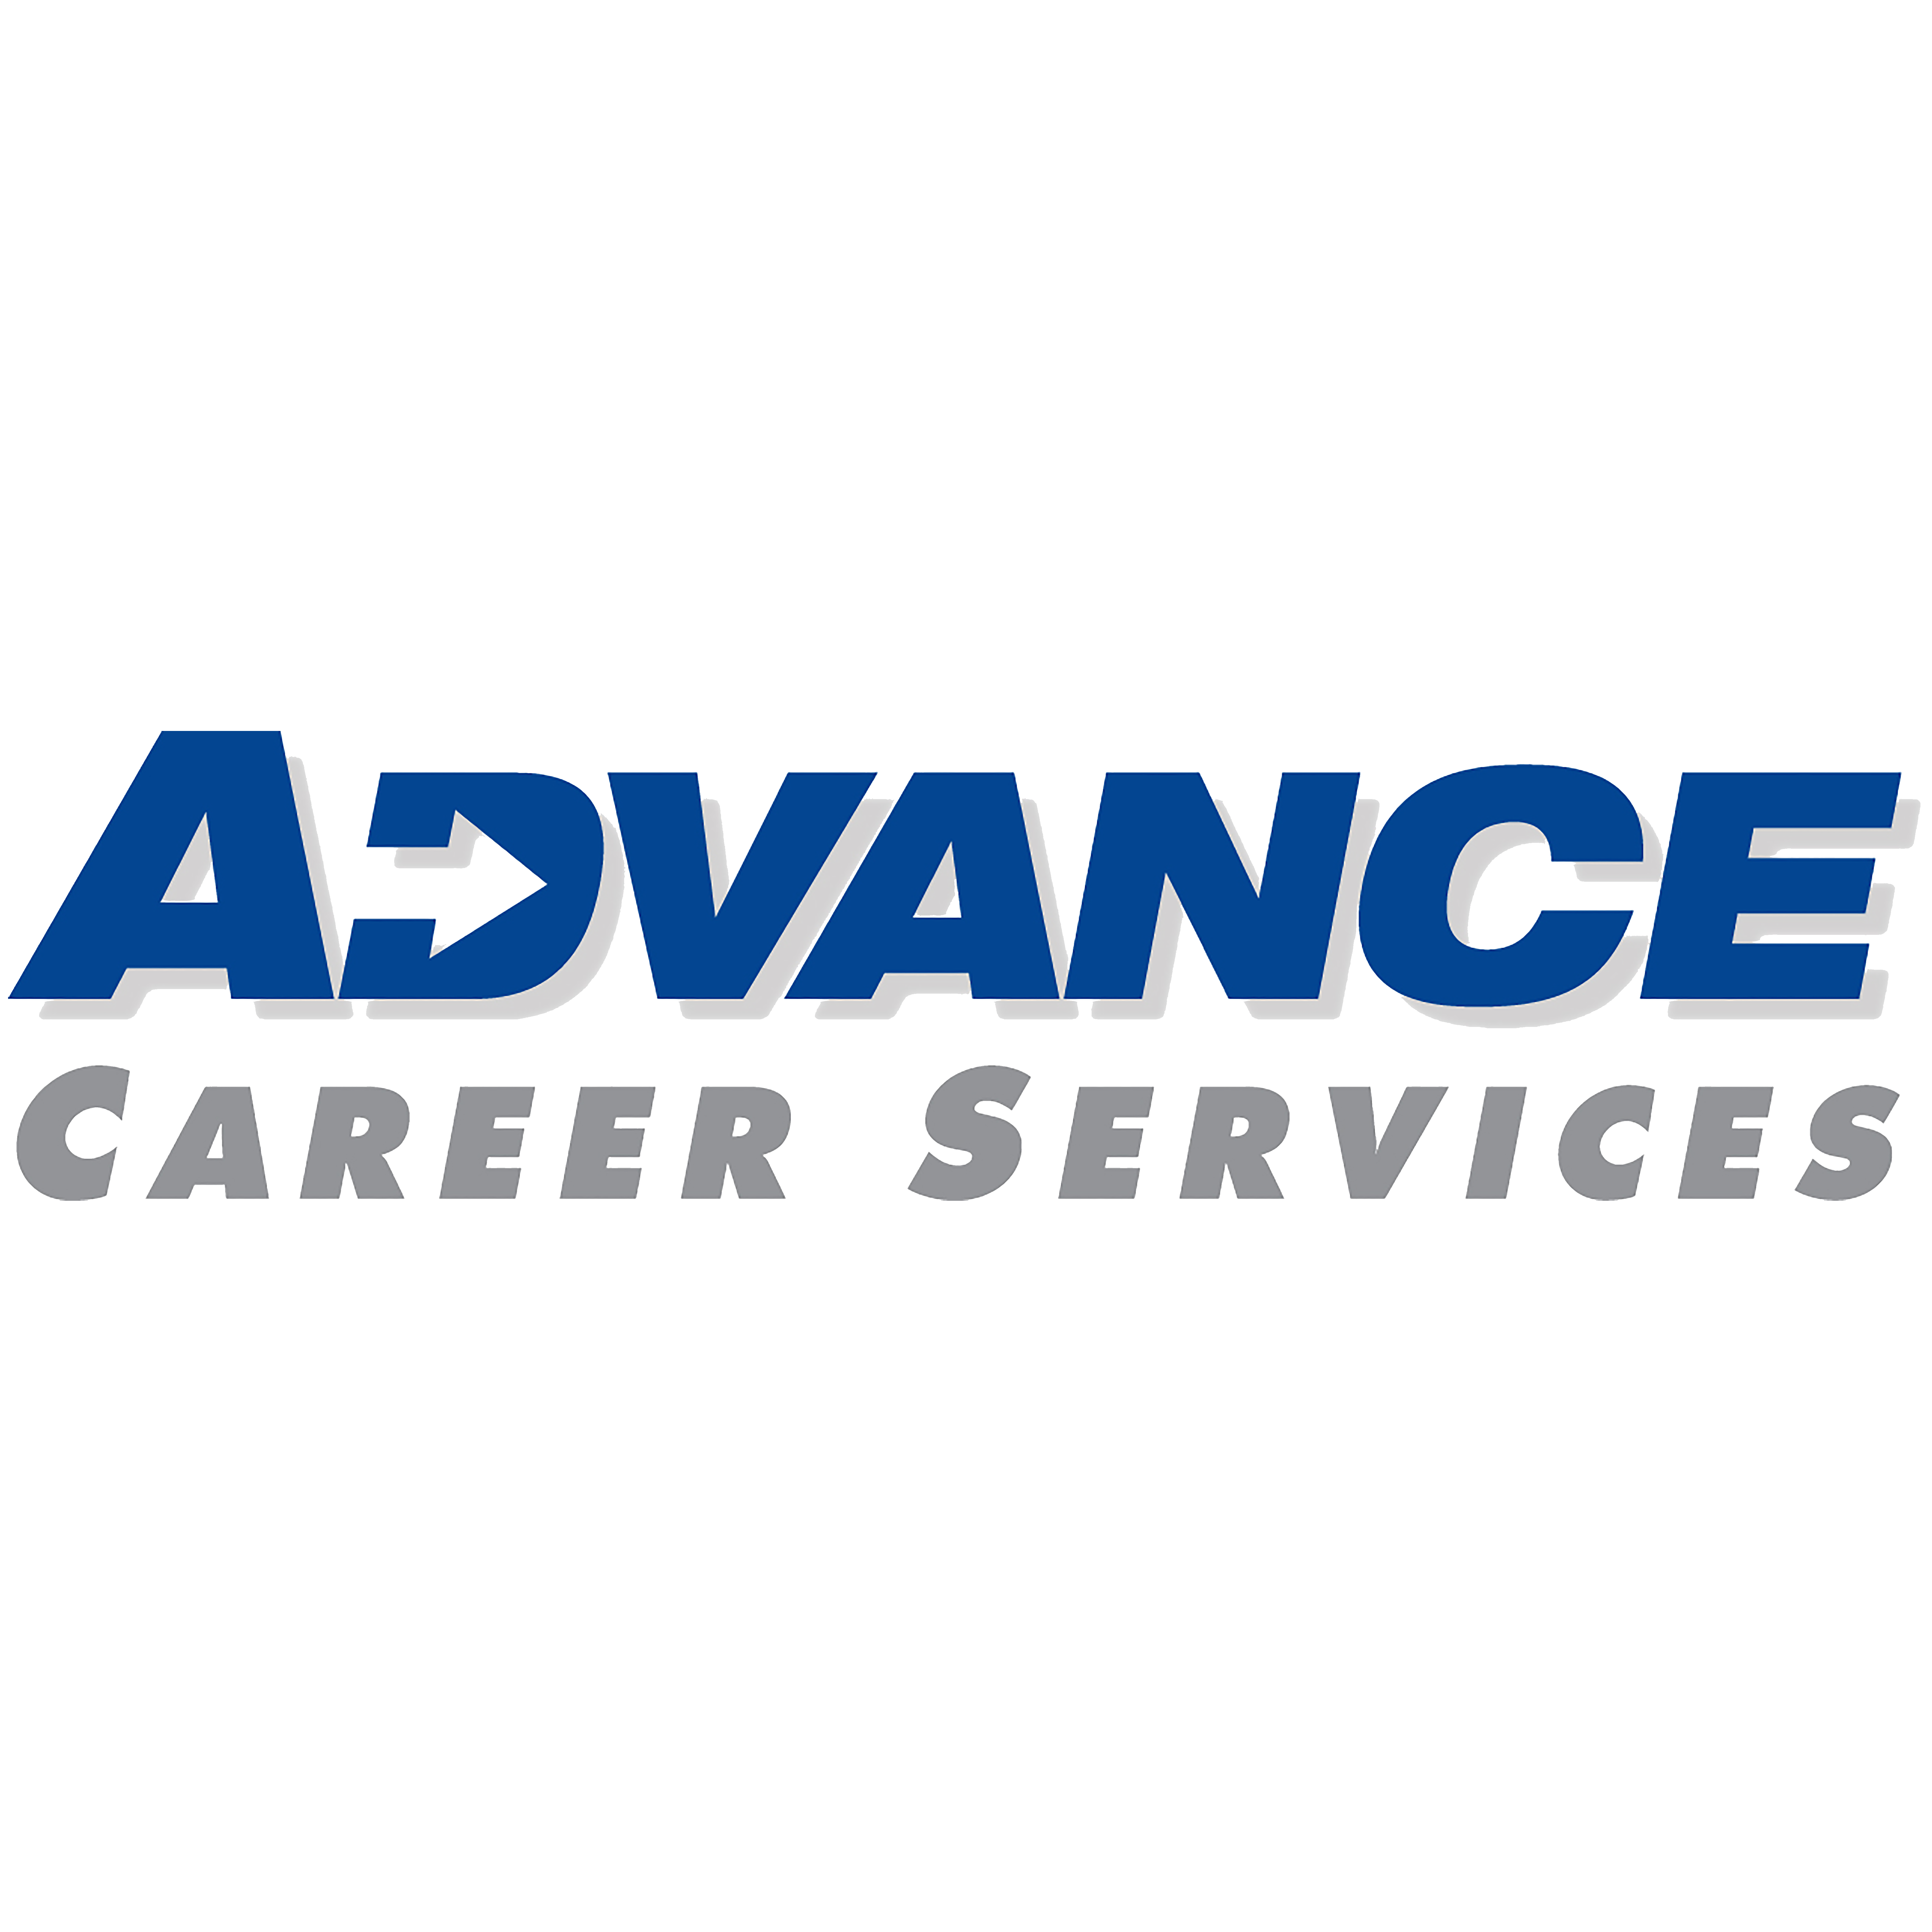 ACS | Advance Career Services - Fall River, MA - Temporary Employment Agencies